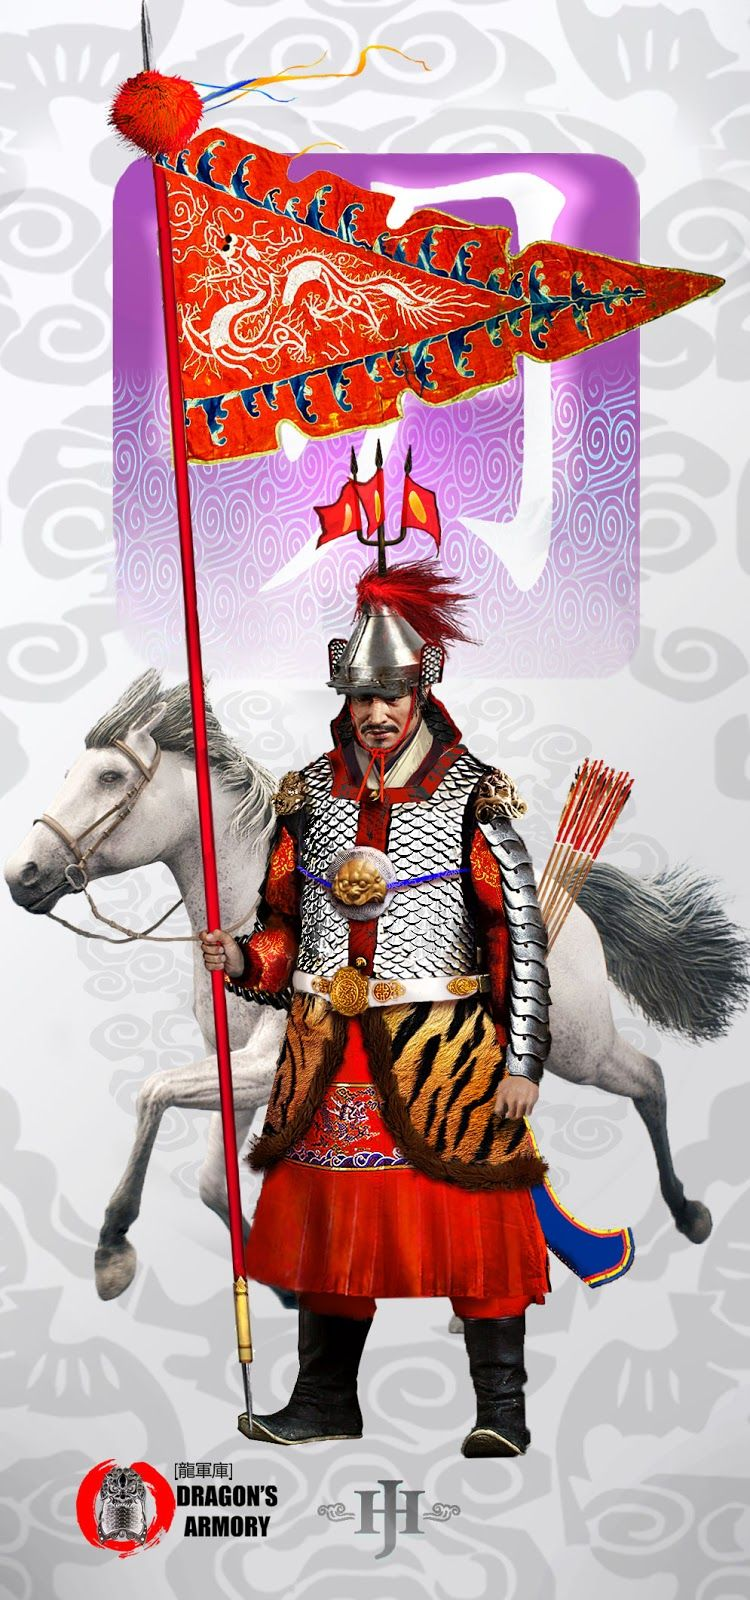 Pin by Juni Yeung on Weapons   Chinese armor, Chinese ...